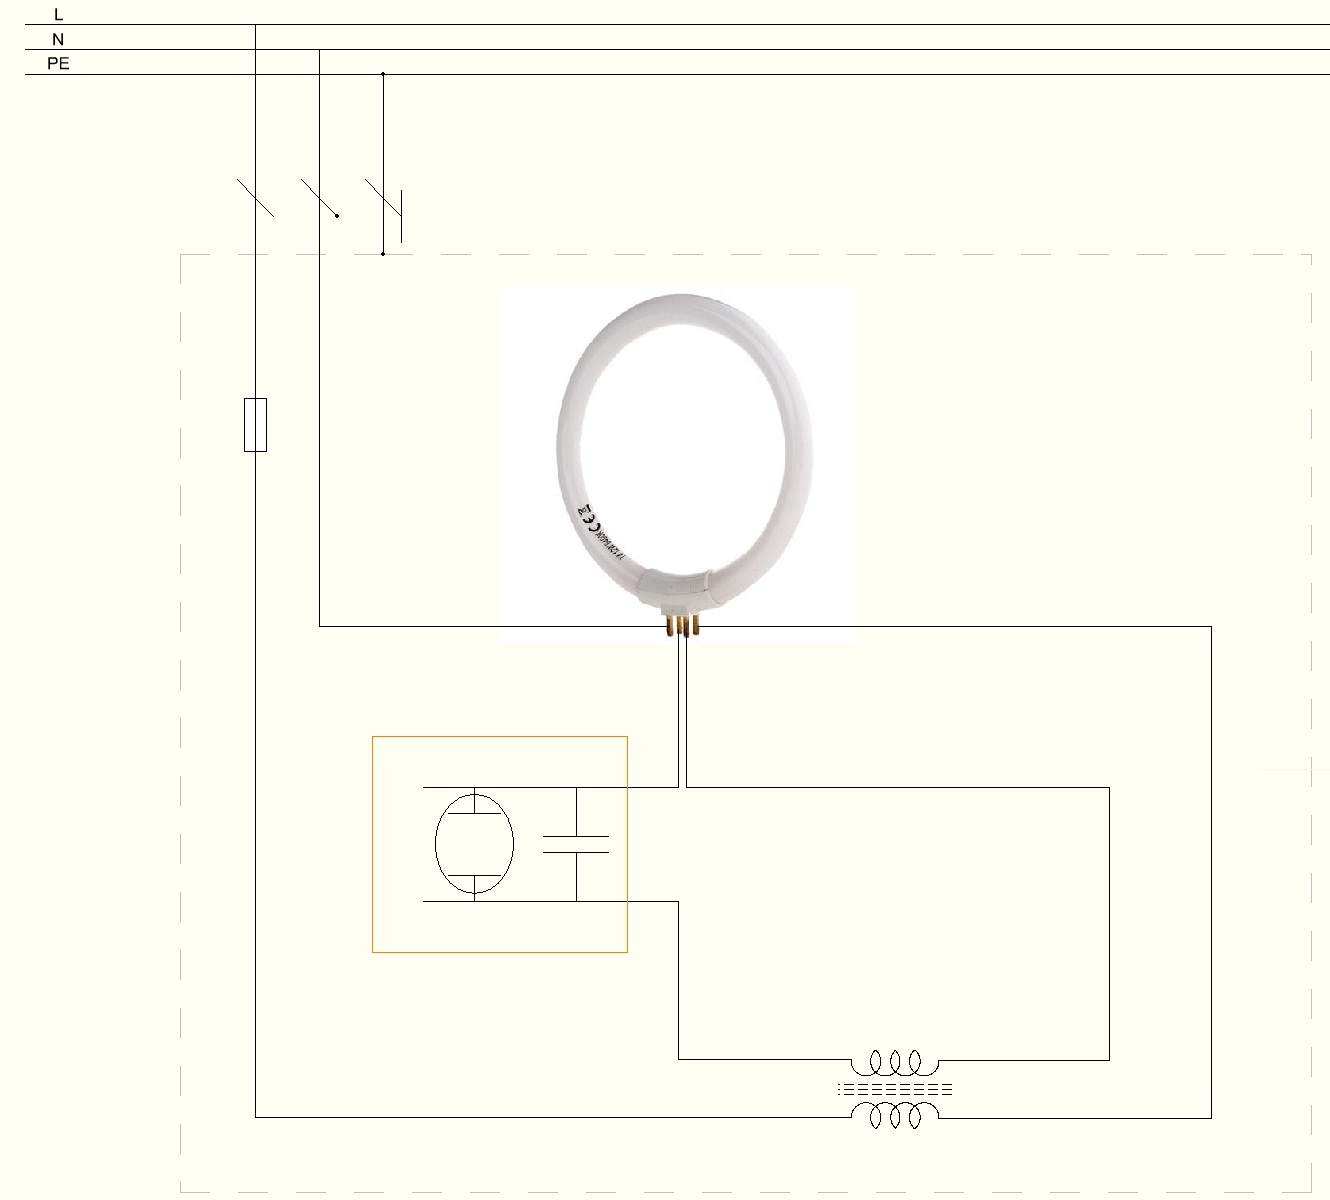 hight resolution of file how to wire circular fluorescent lamp jpg